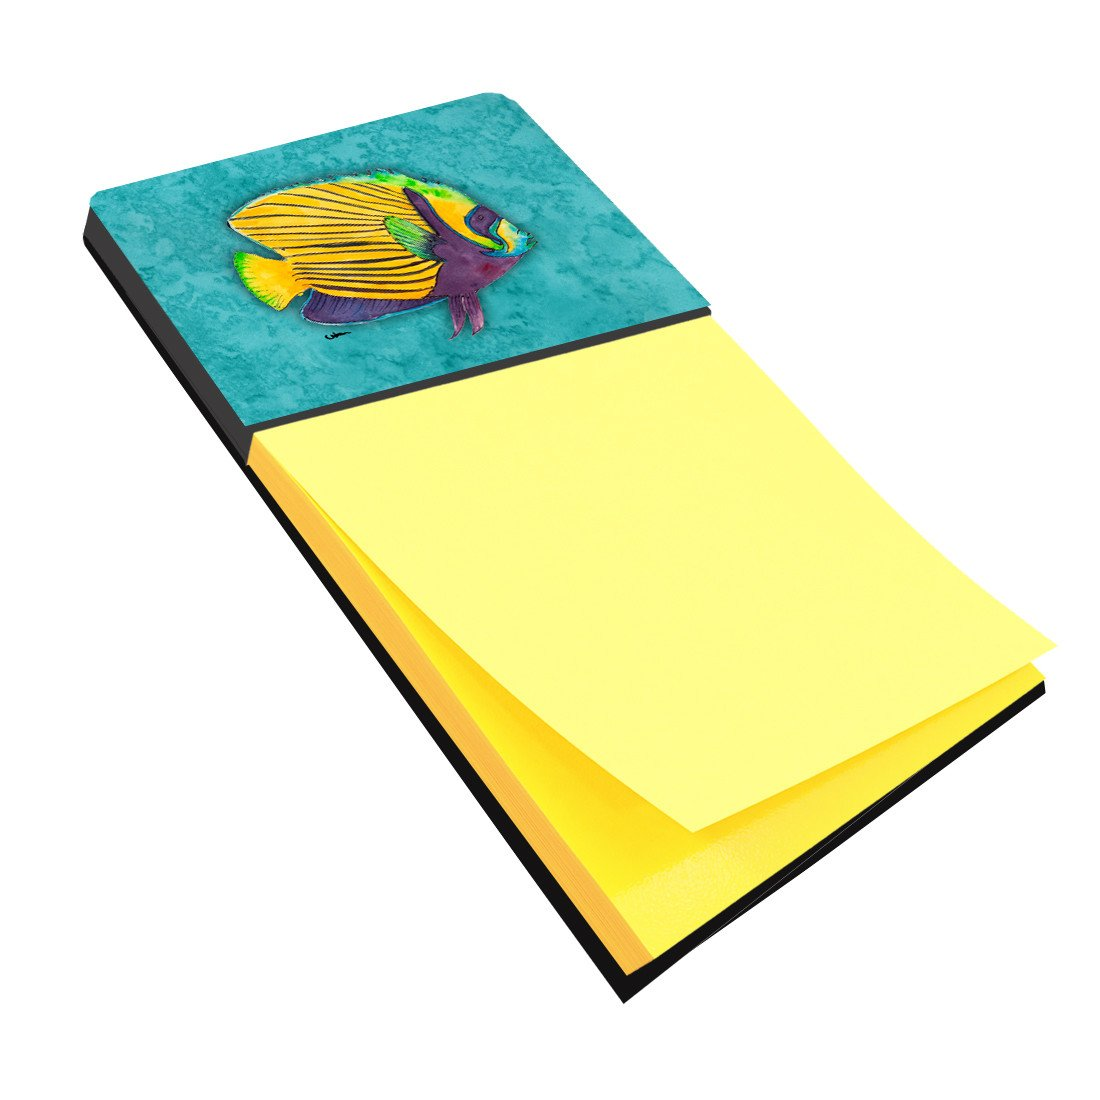 Tropical Fish Refiillable Sticky Note Holder or Postit Note Dispenser 8674SN by Caroline's Treasures